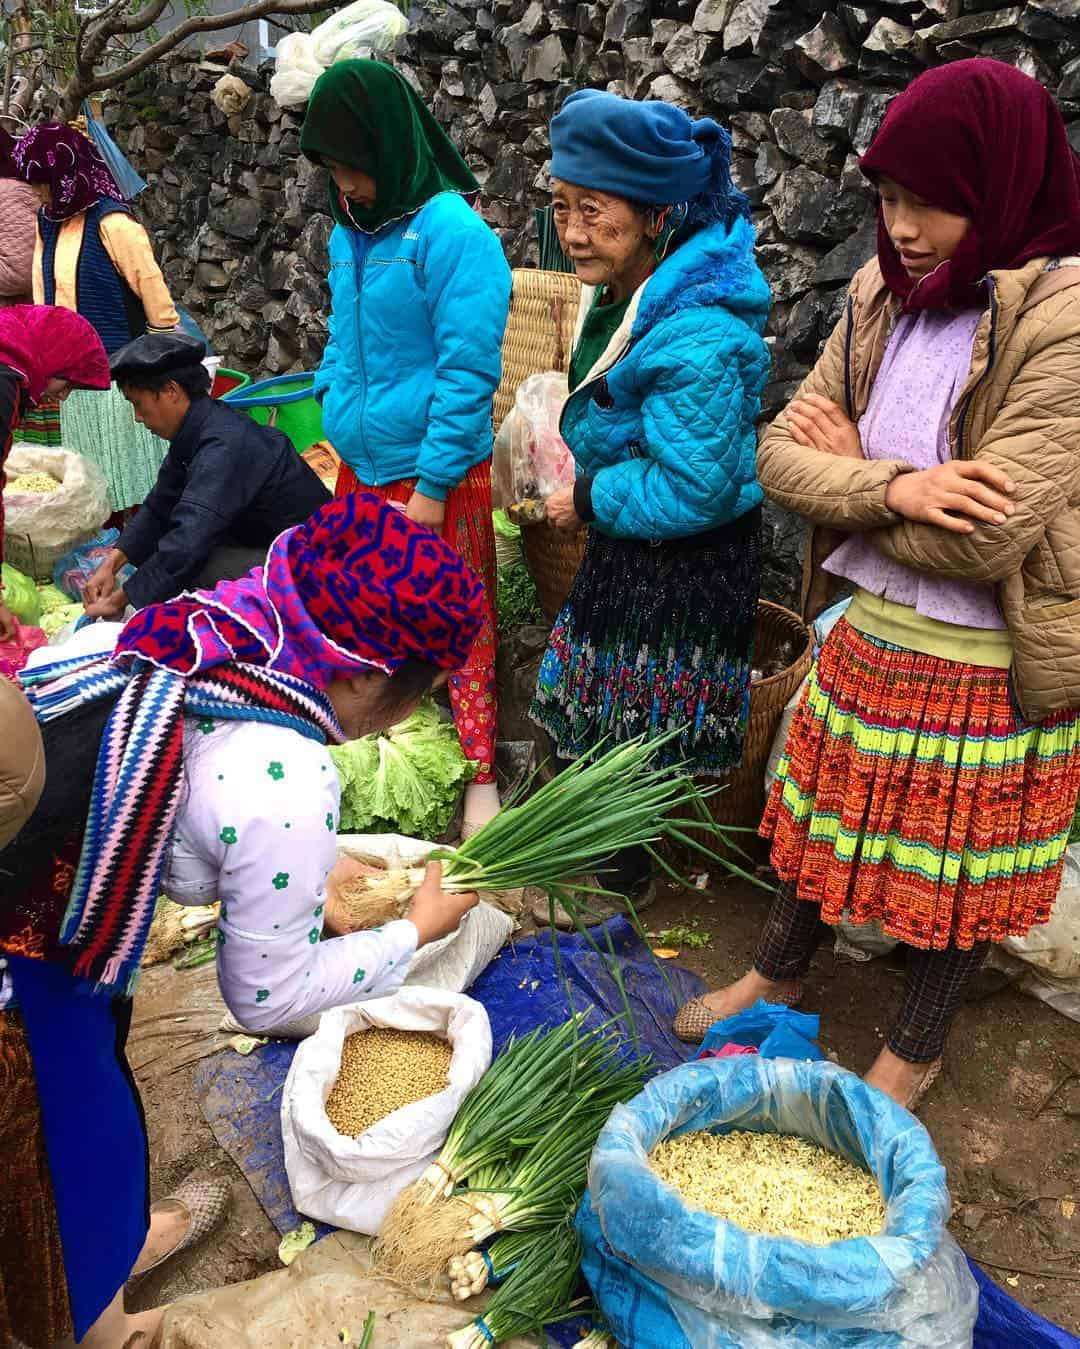 Locals trading in Lung Phin market